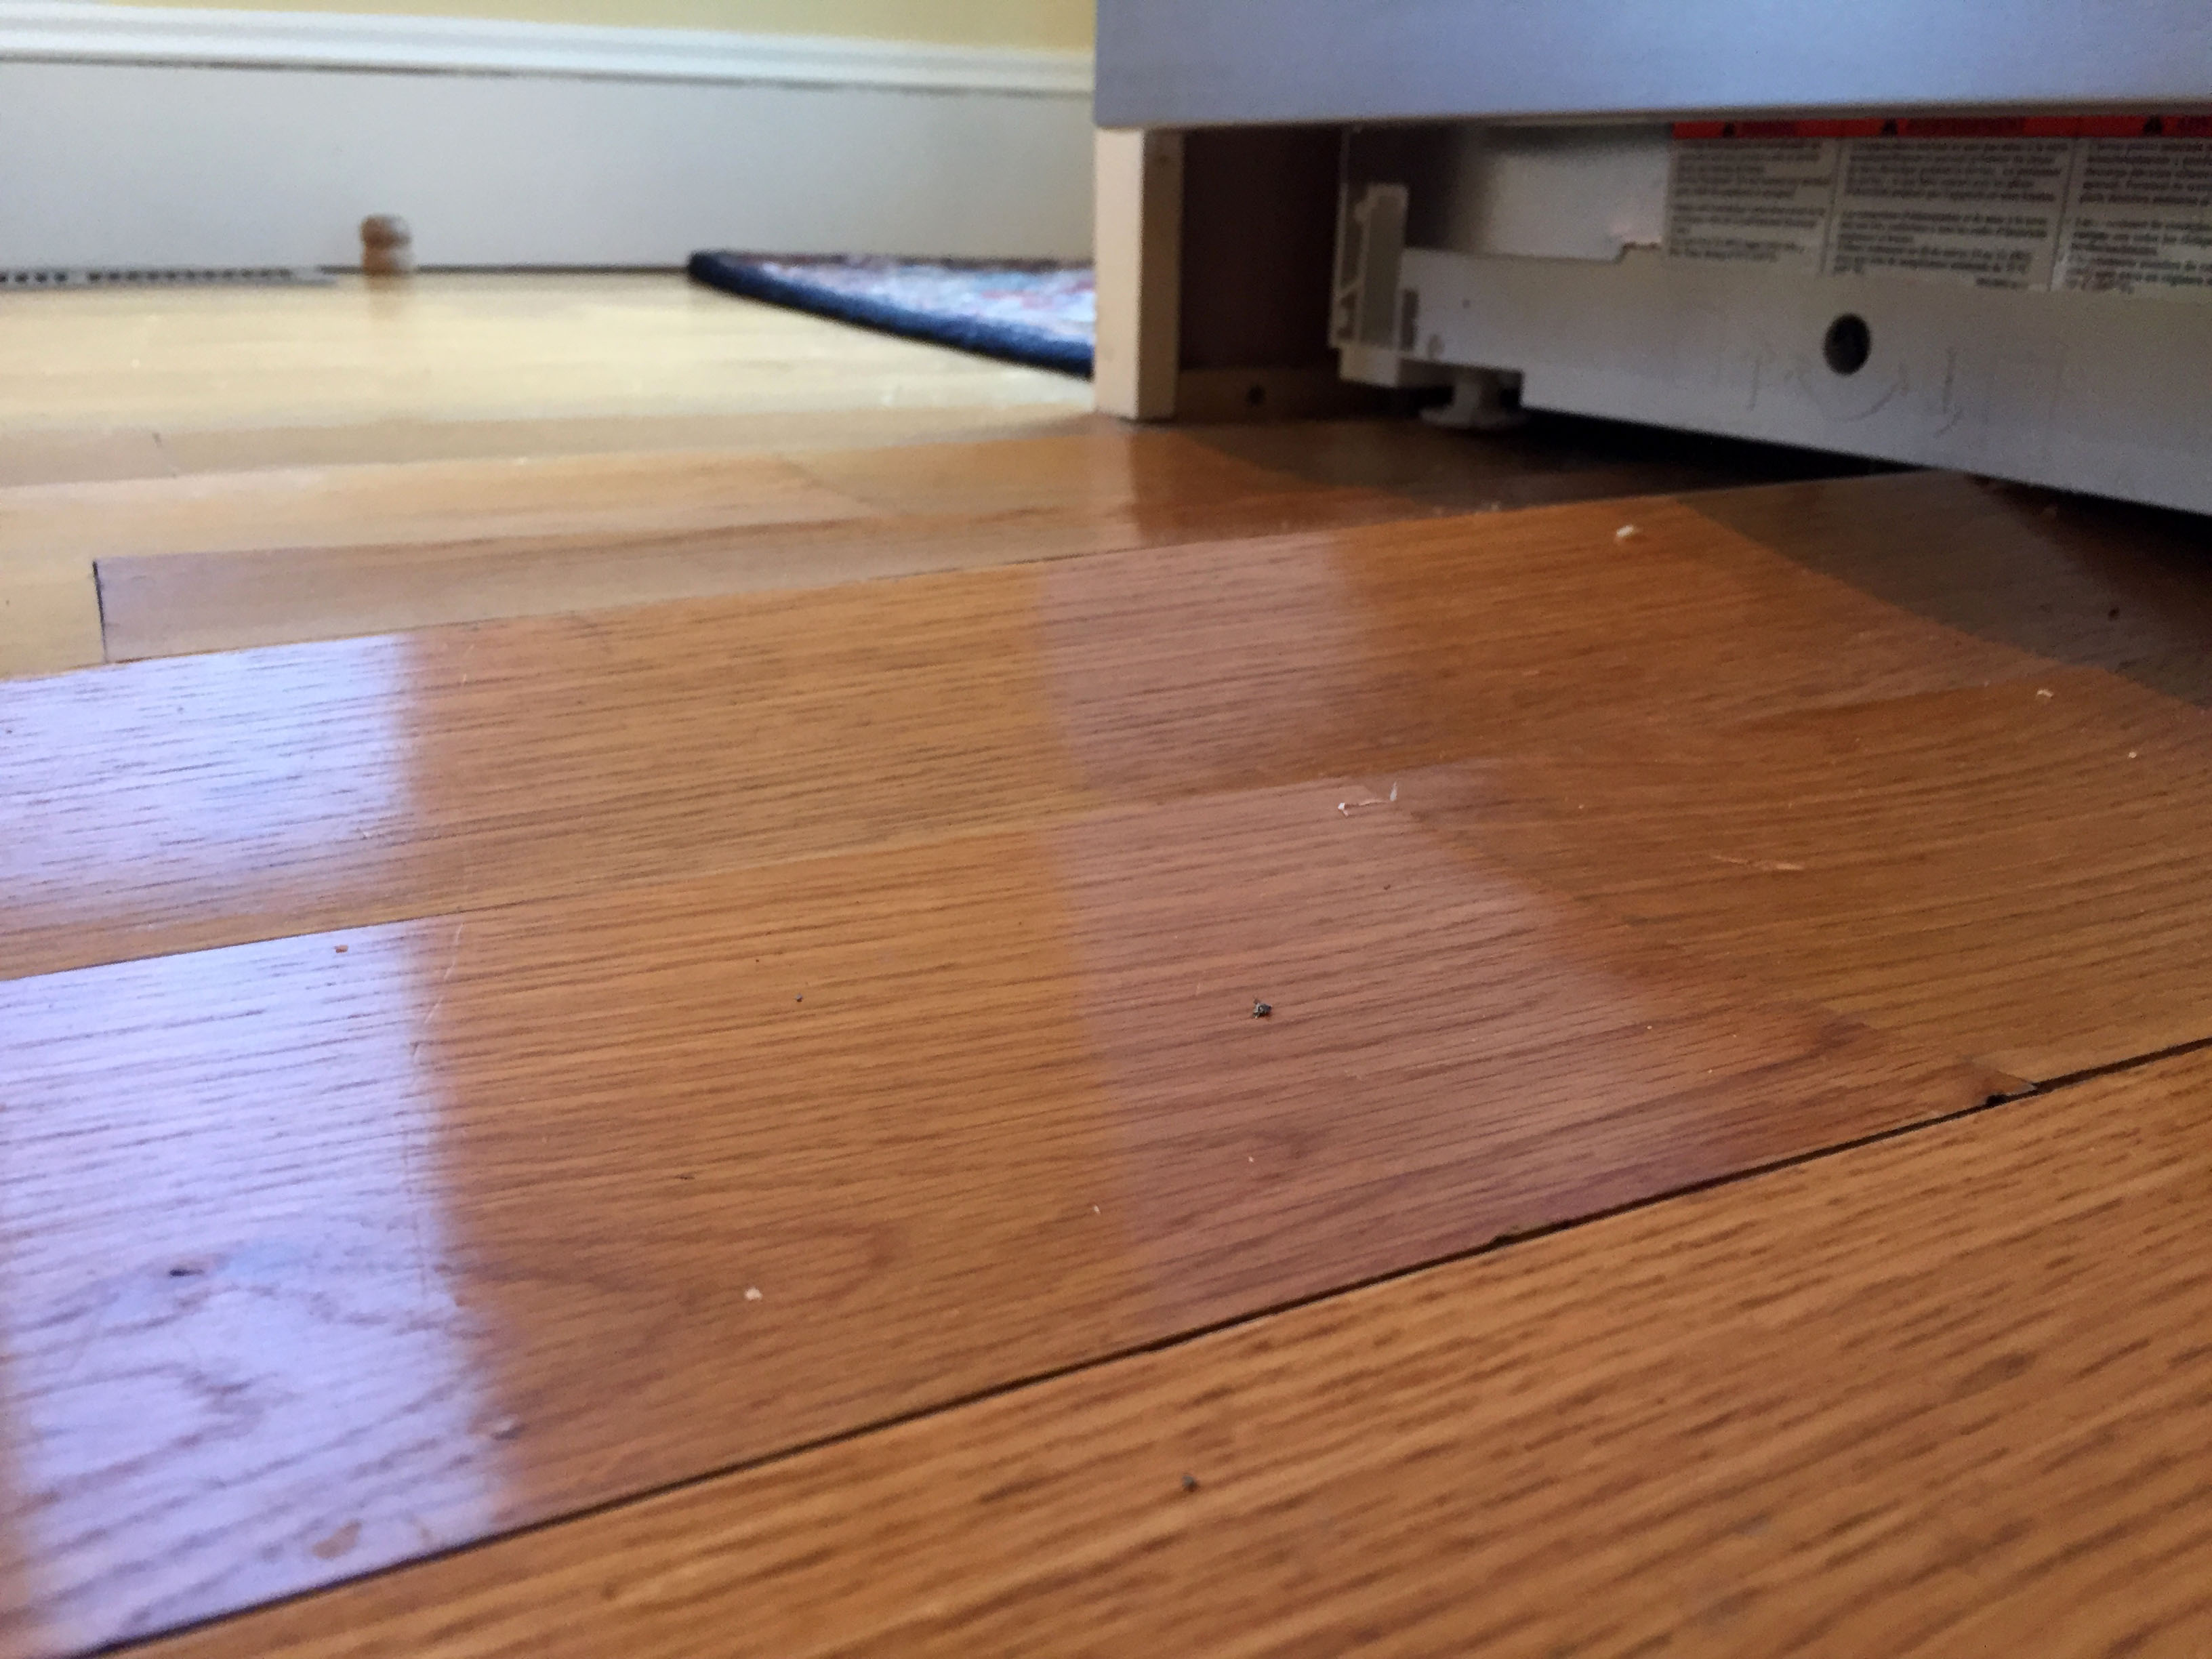 Water Damage hardwood Floors